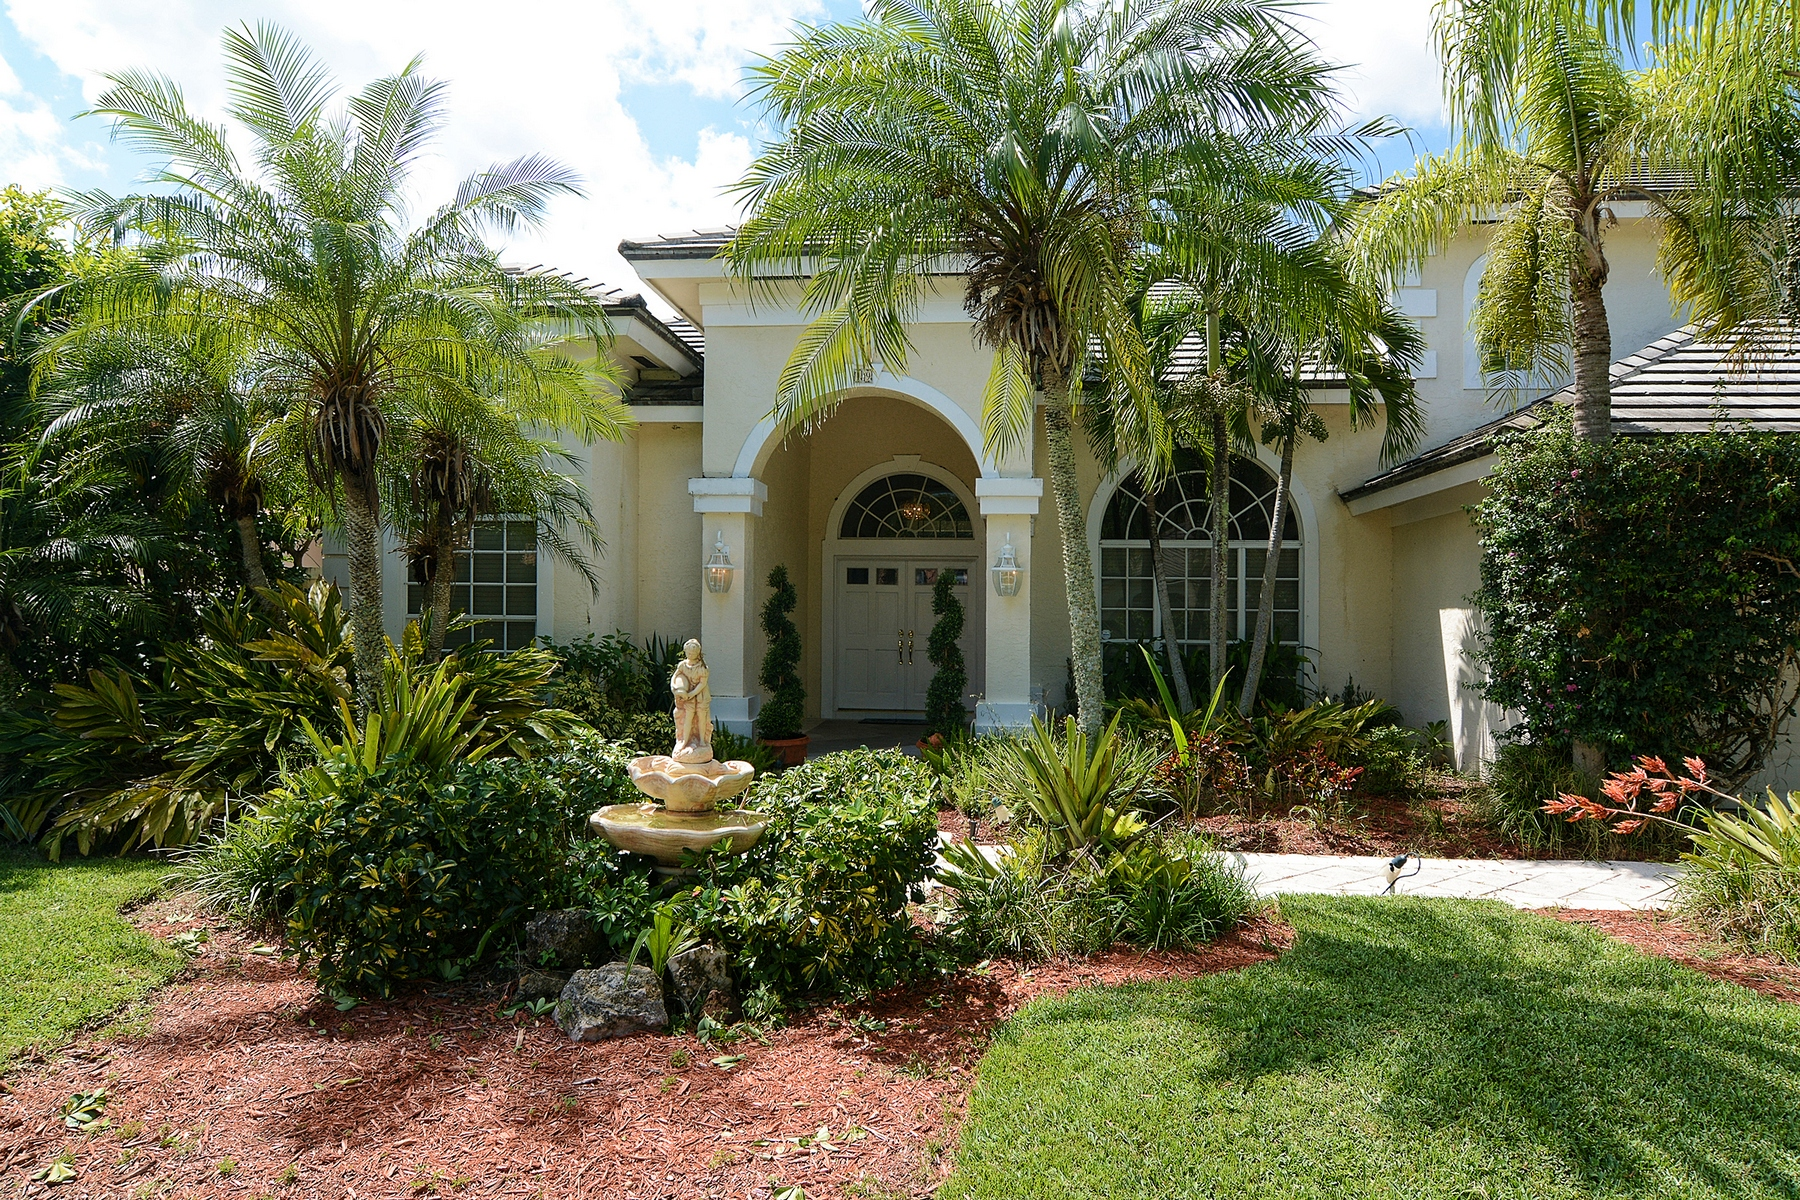 Casa Unifamiliar por un Venta en 19 Windward Isle Palm Beach Gardens, Florida, 33418 Estados Unidos